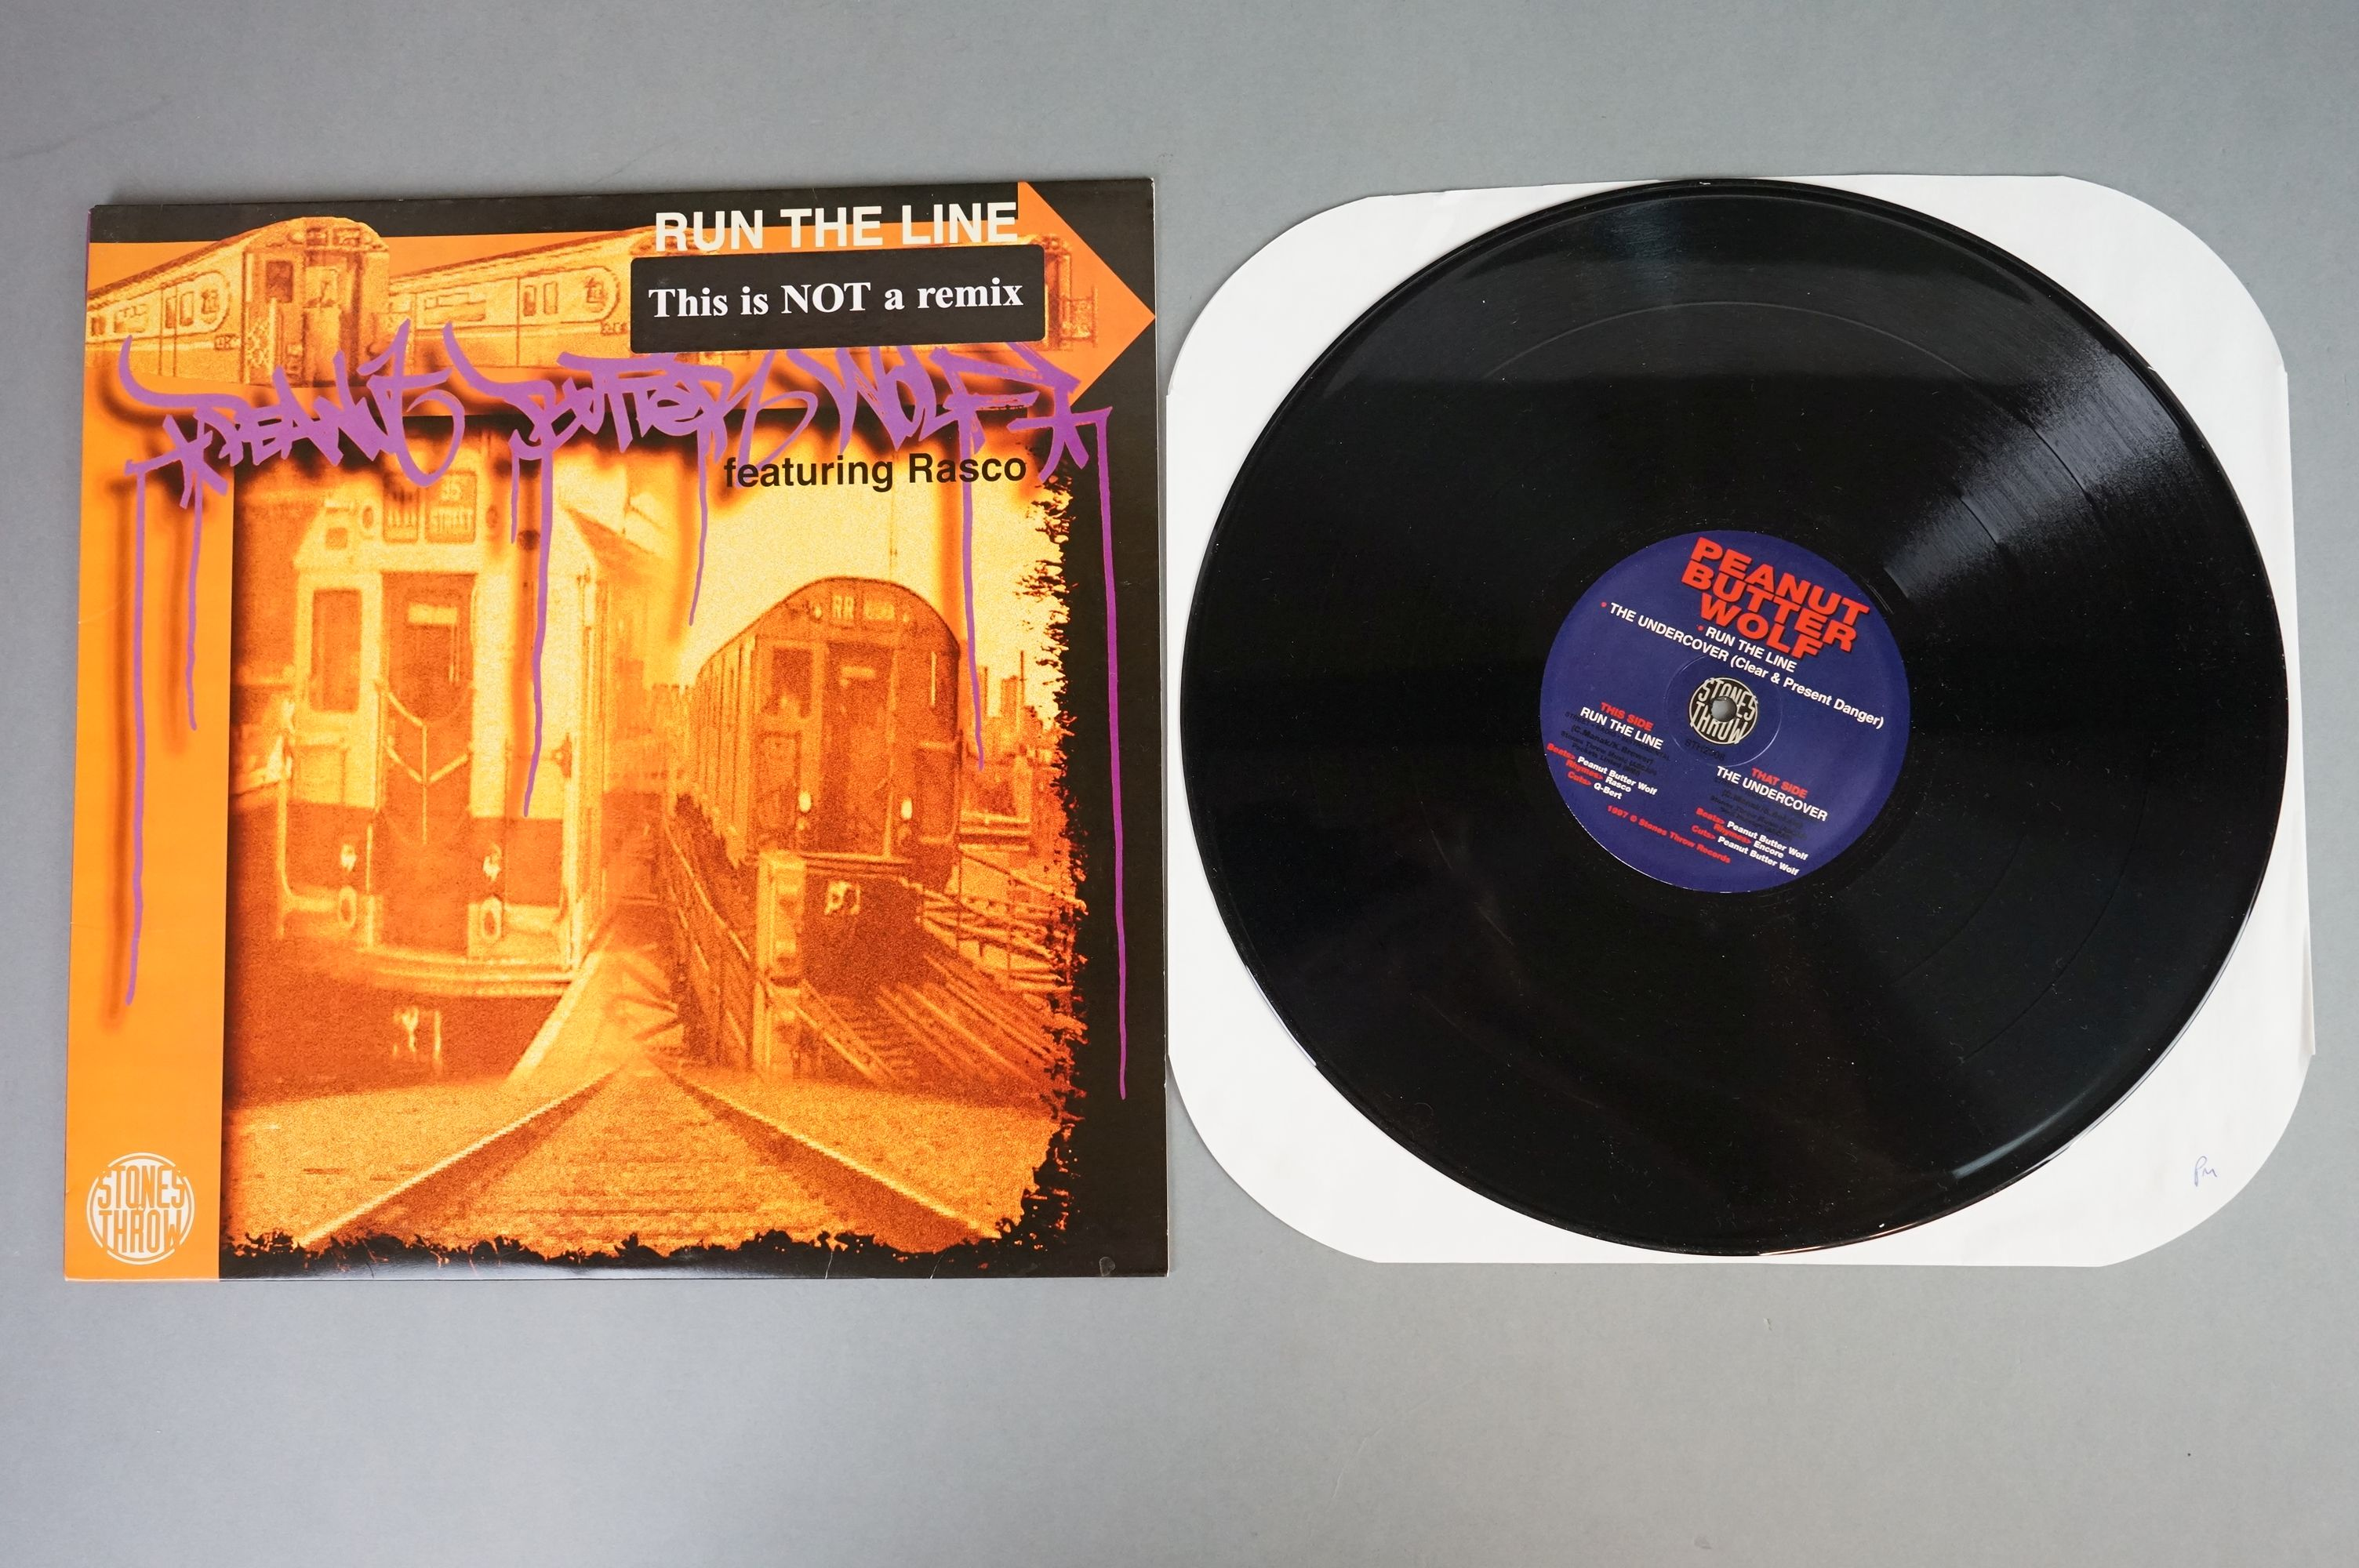 """Vinyl - Slurped Too! 2LP Compilation and 3 x Peanut Butter Wolf 12"""" singles to include Run The - Image 4 of 11"""